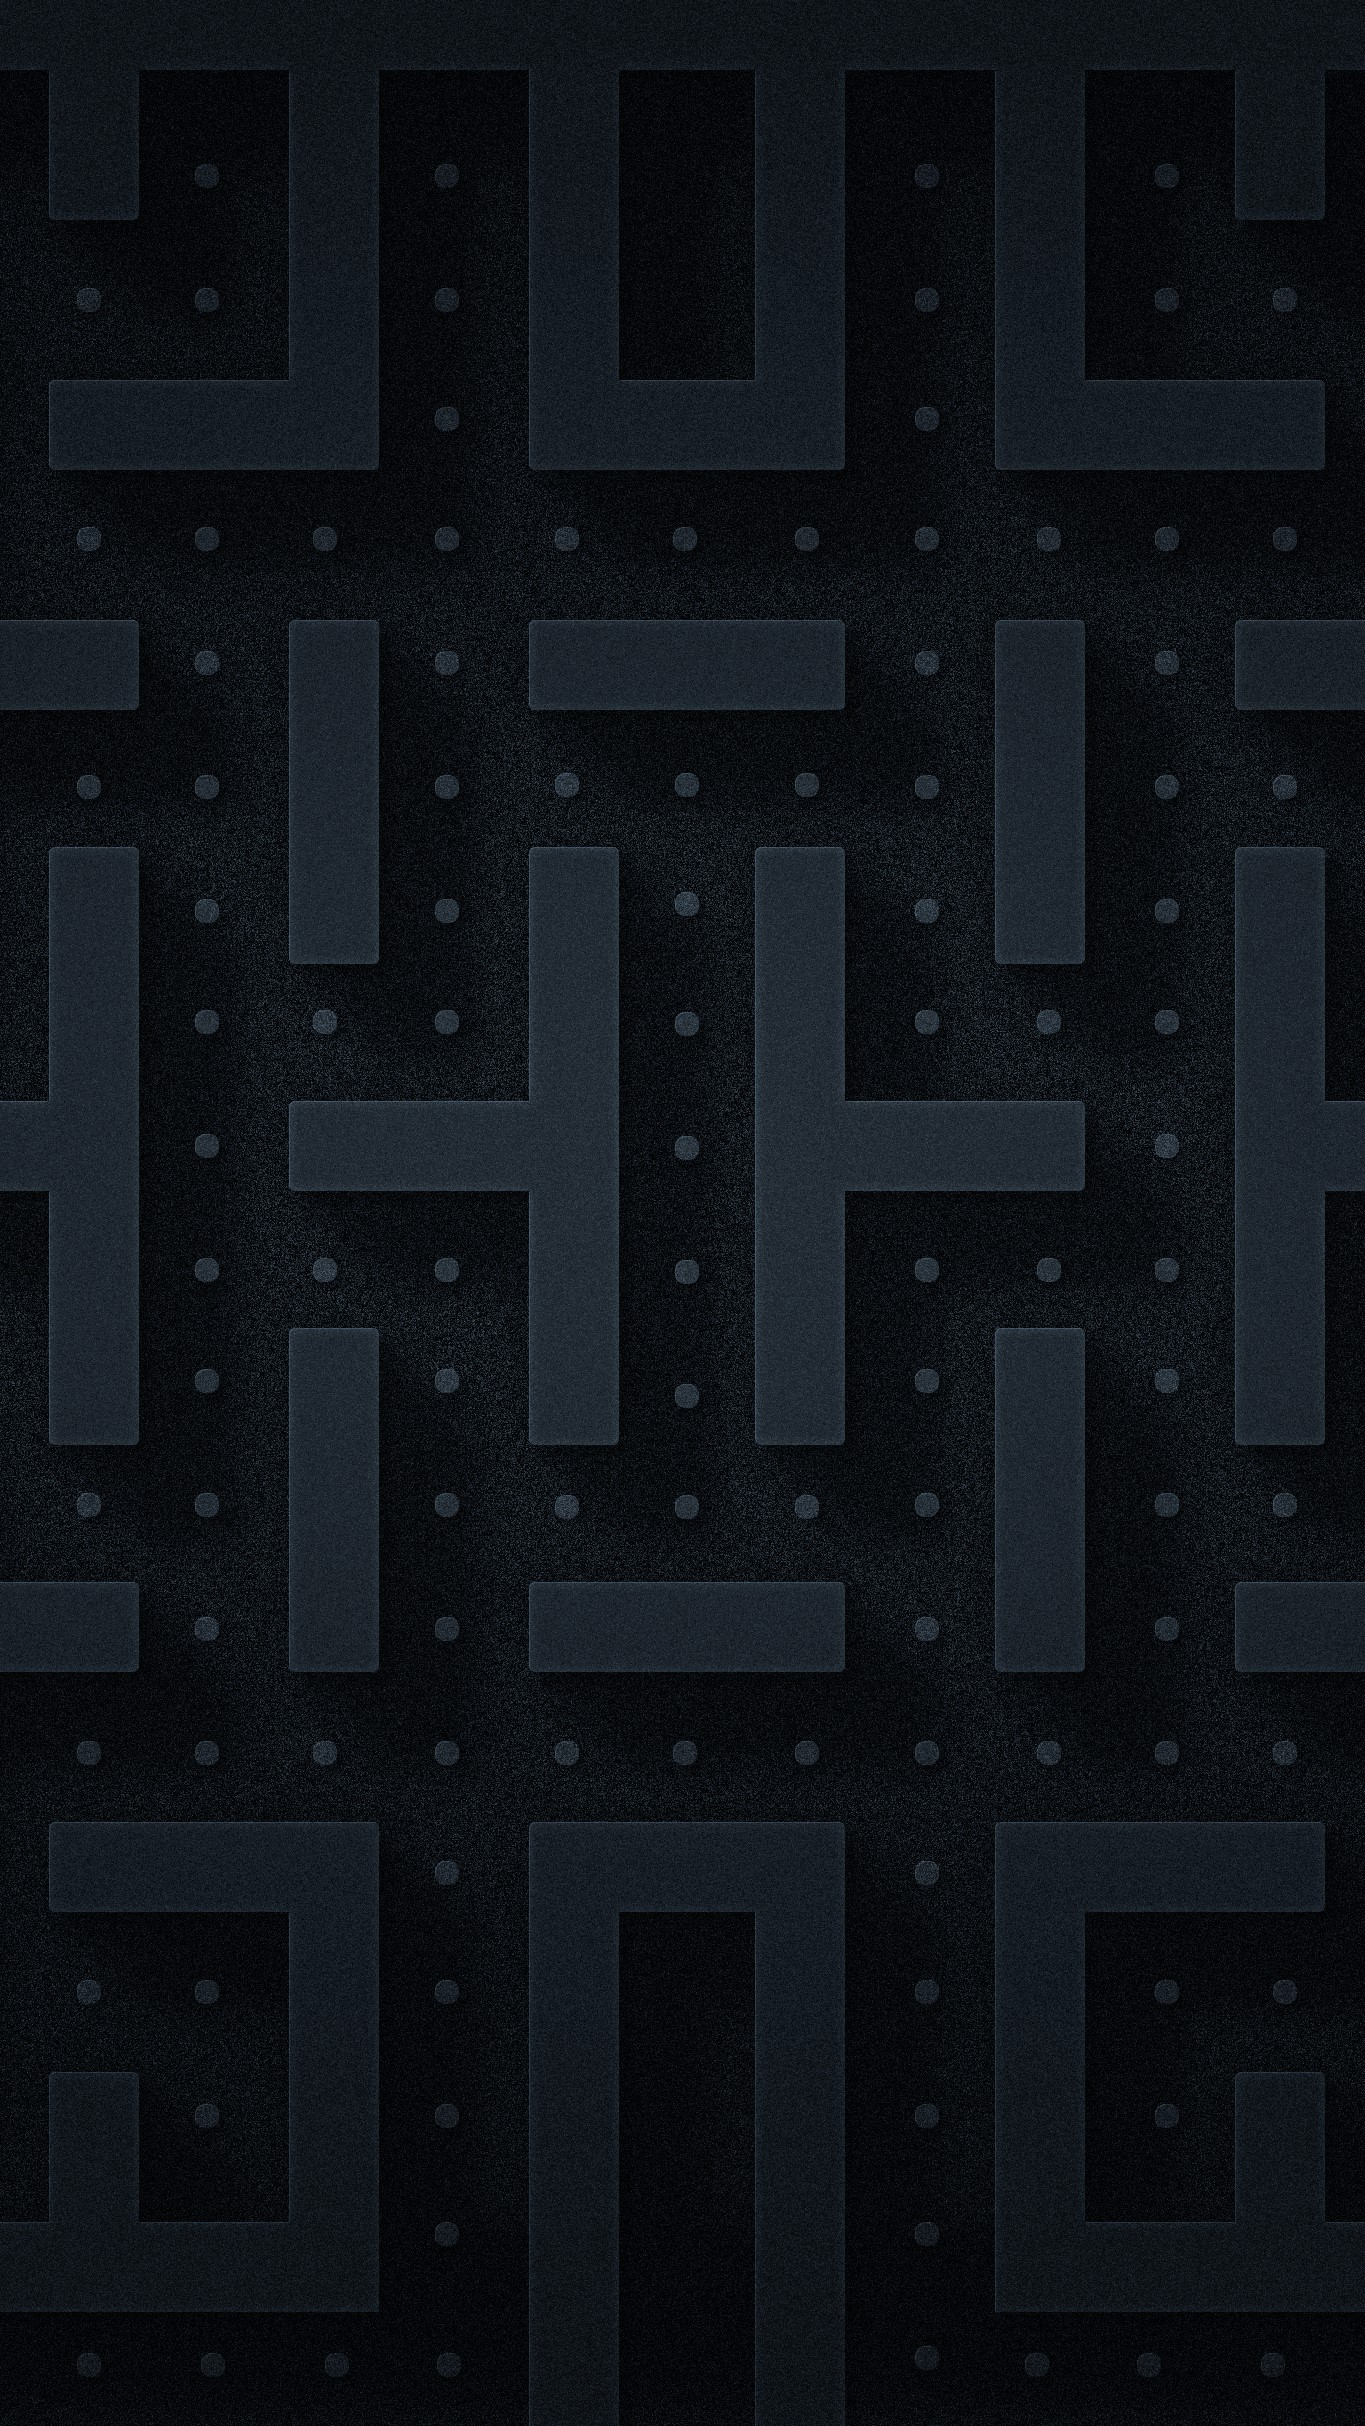 black maze pacman wallpaper dark